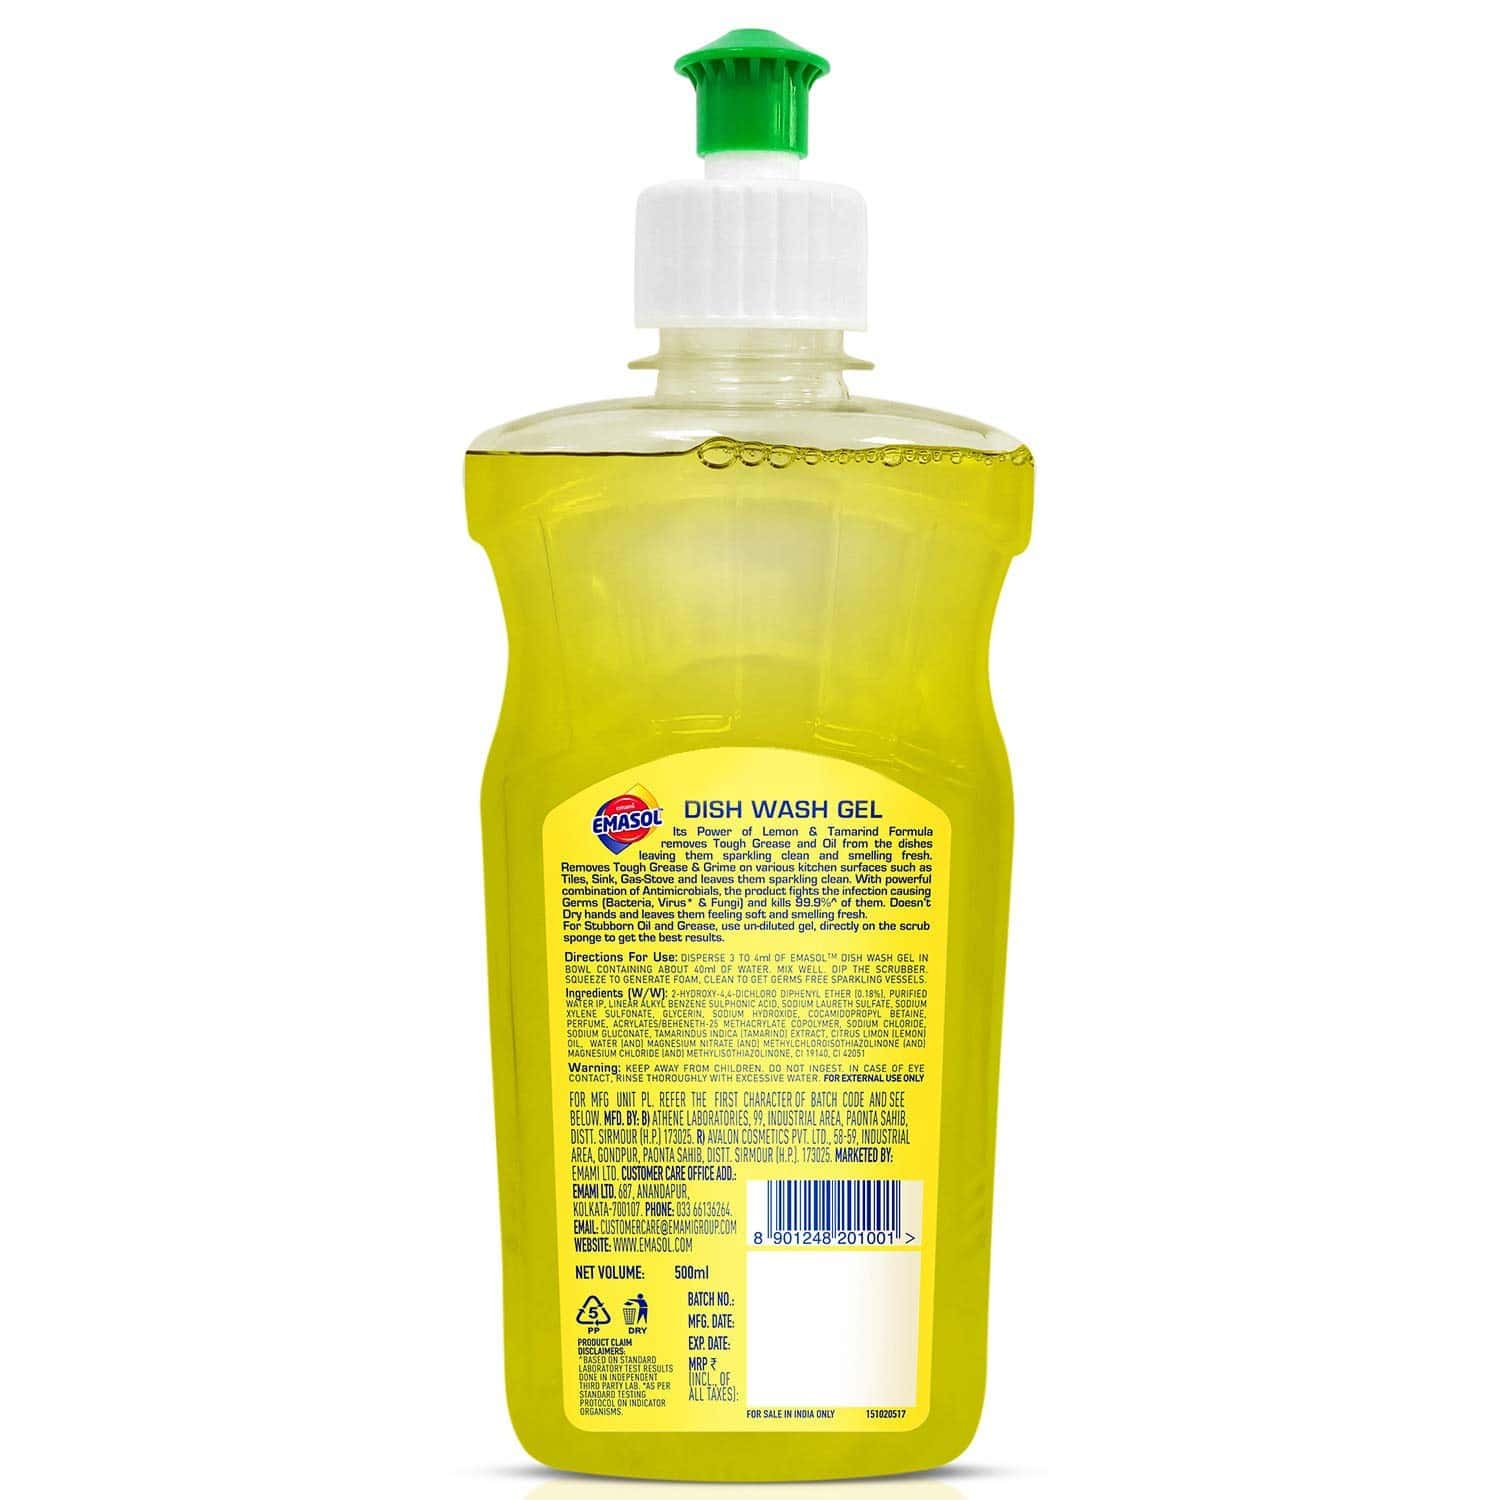 Emami Emasol Dish Wash Gel- Lemon - 500ml